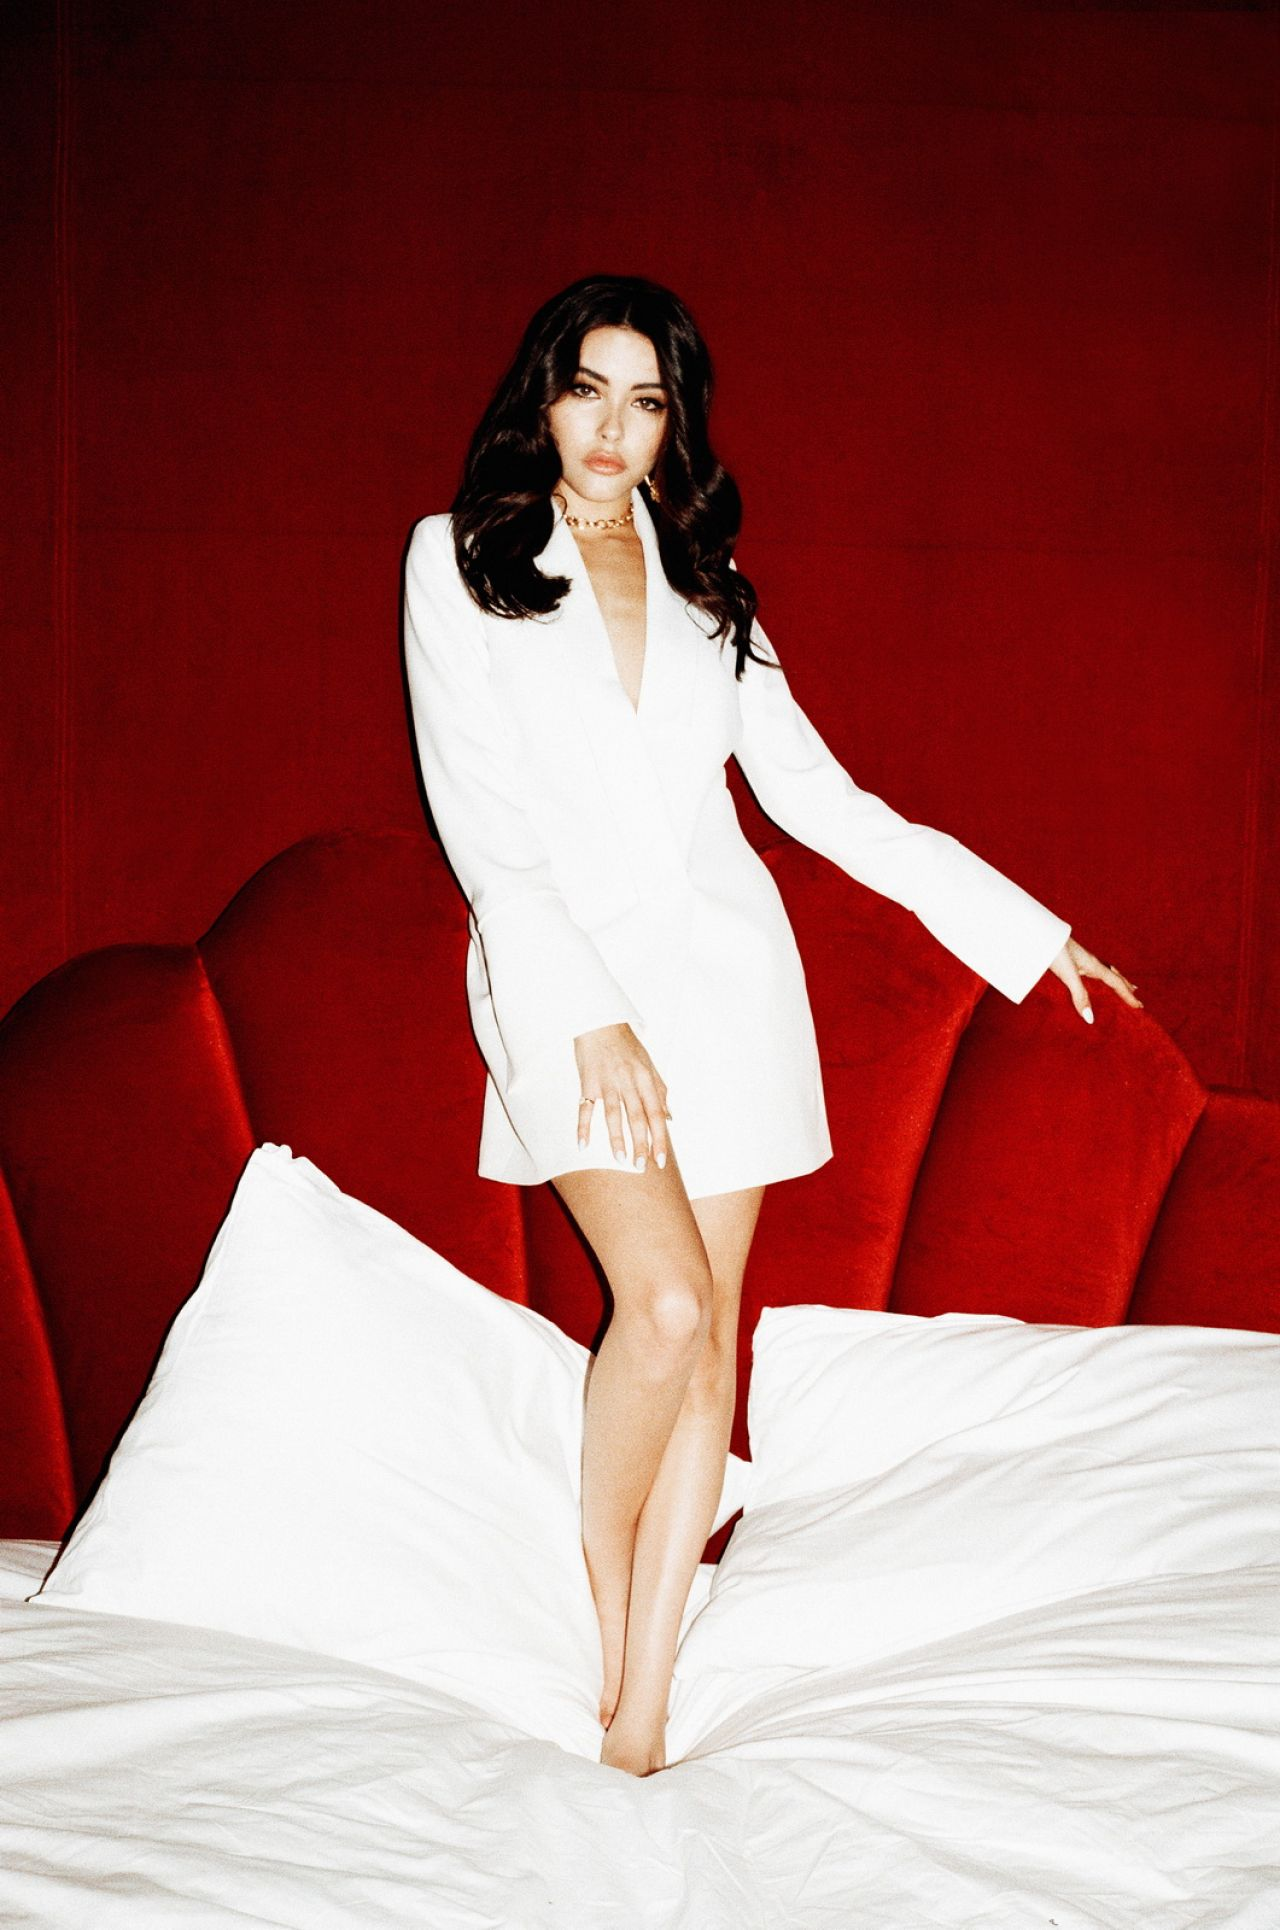 e76fe69a4 Madison Beer – Madison Beer X Missguided 2018 Campaign